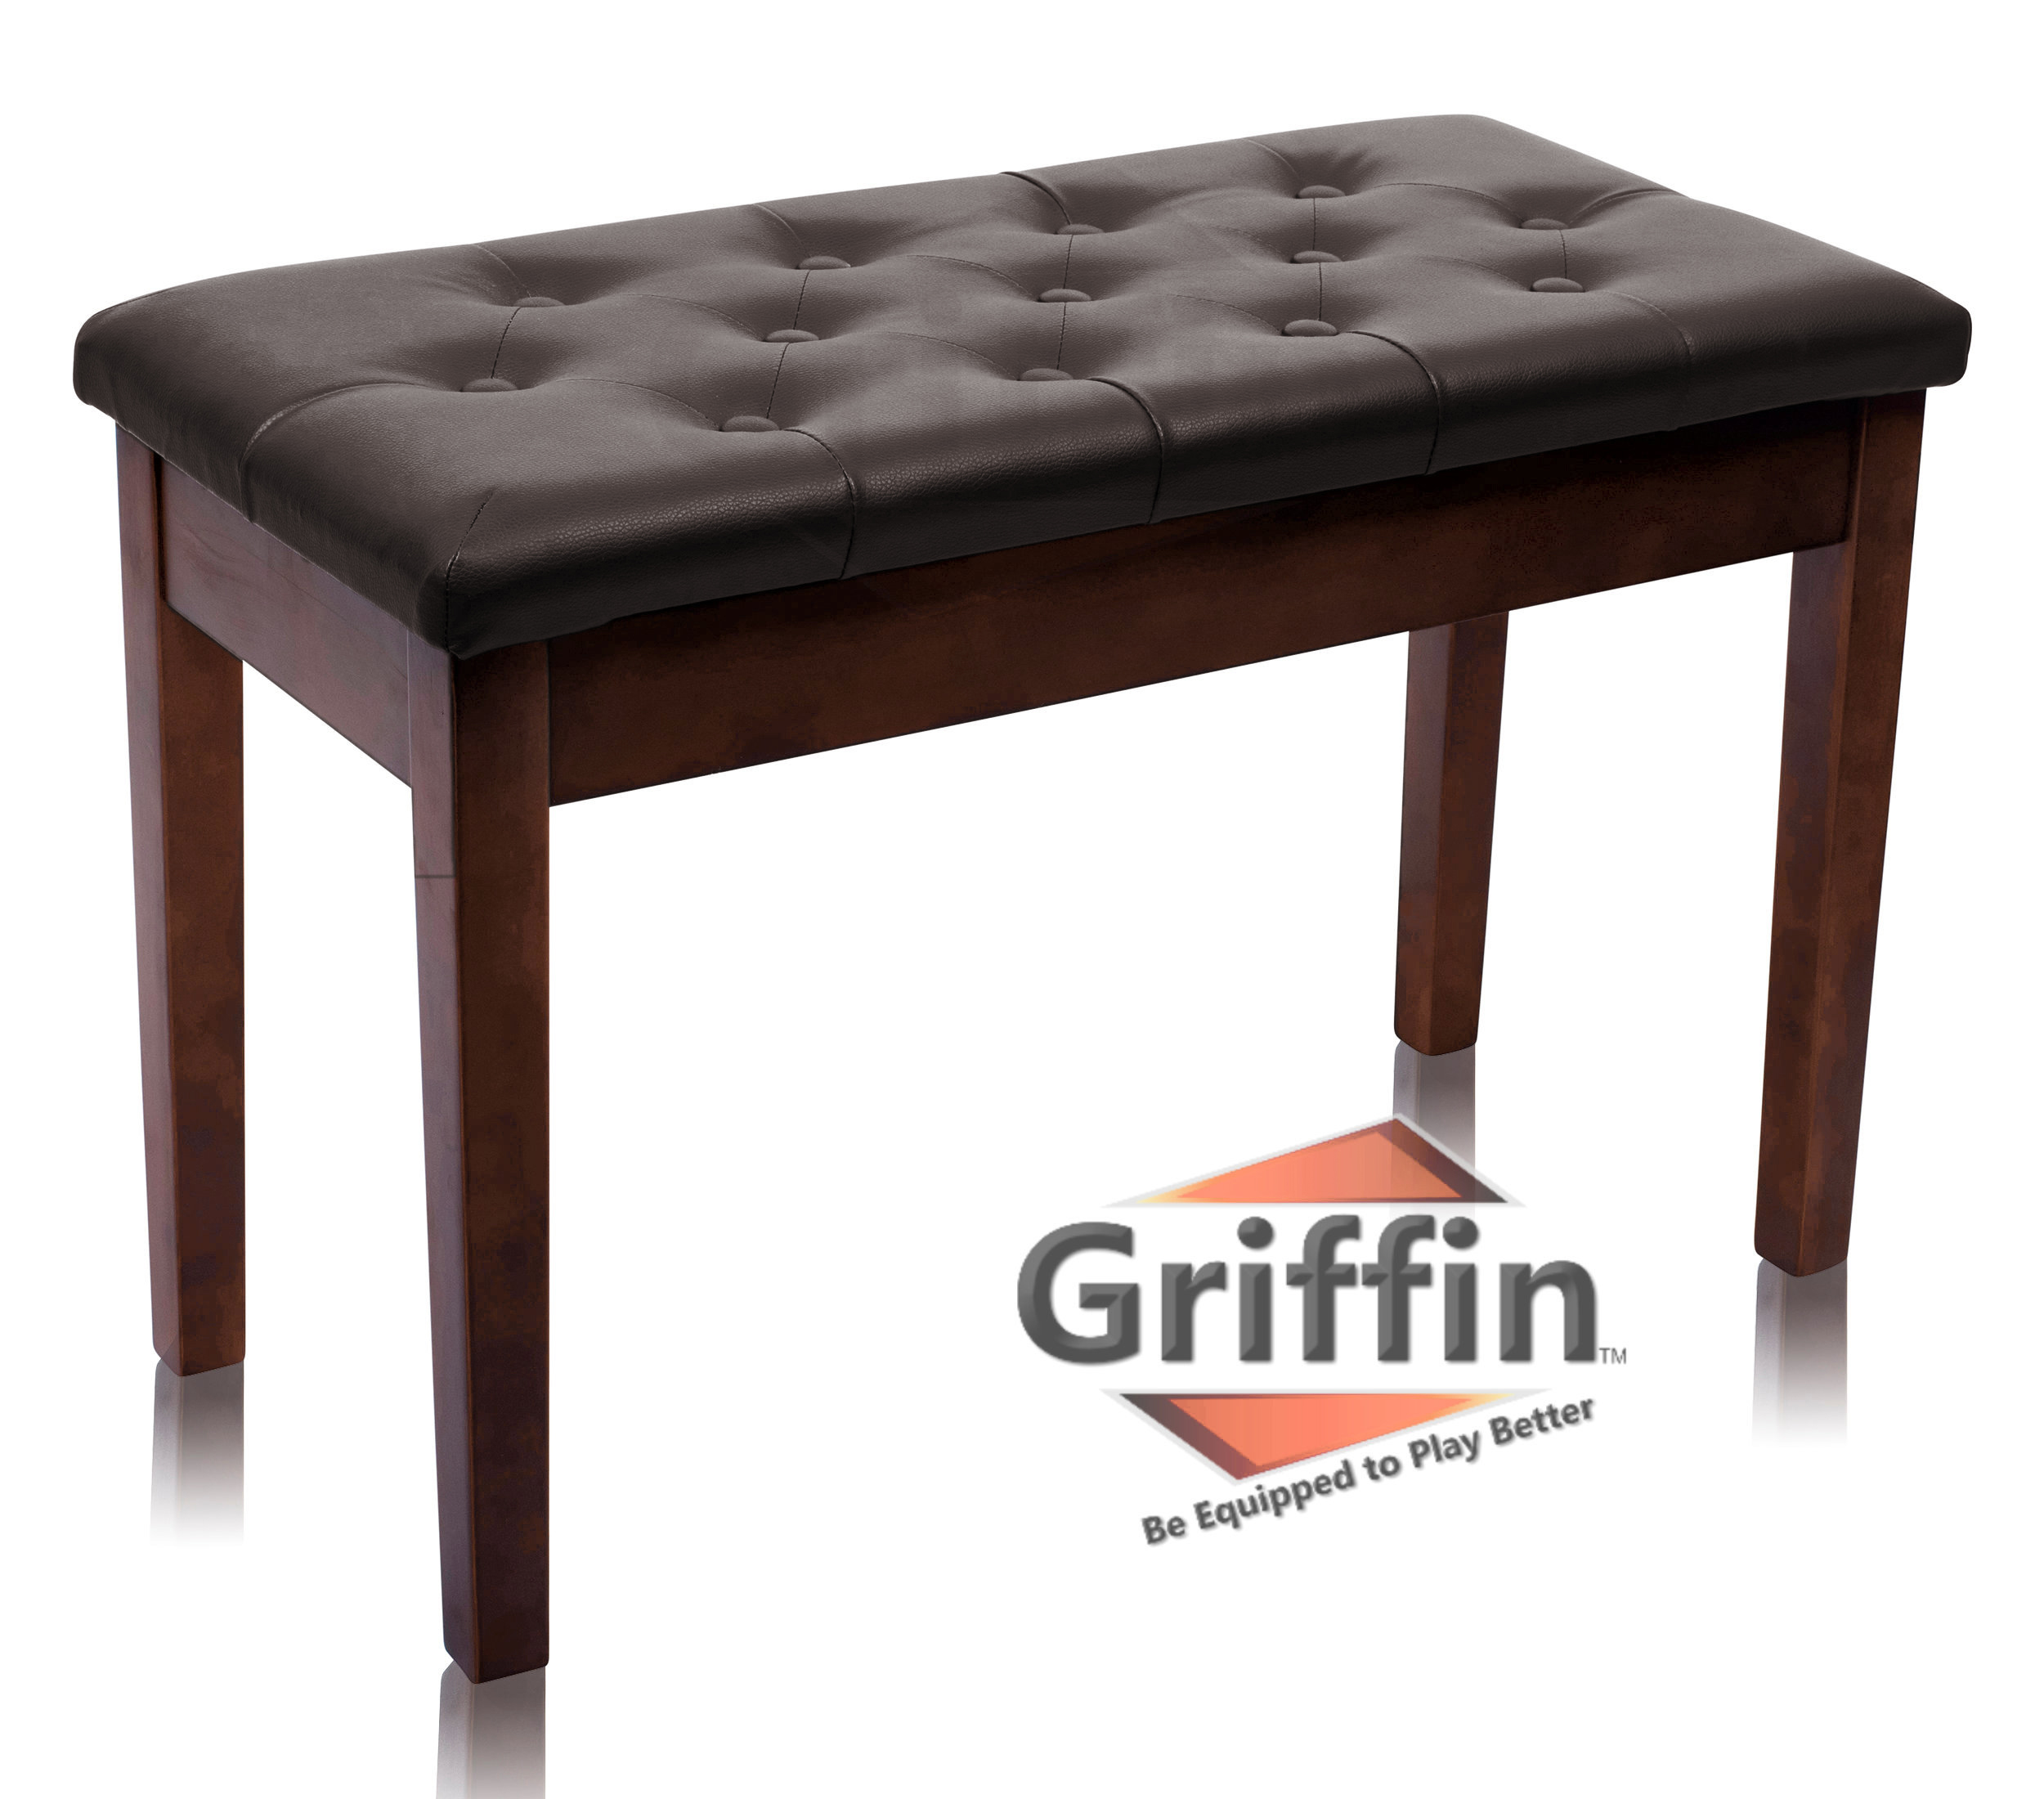 Superieur Griffin Double Brown Leather Piano Bench U2013 Vintage Design, Heavy Duty U0026  Ergonomic Keyboard